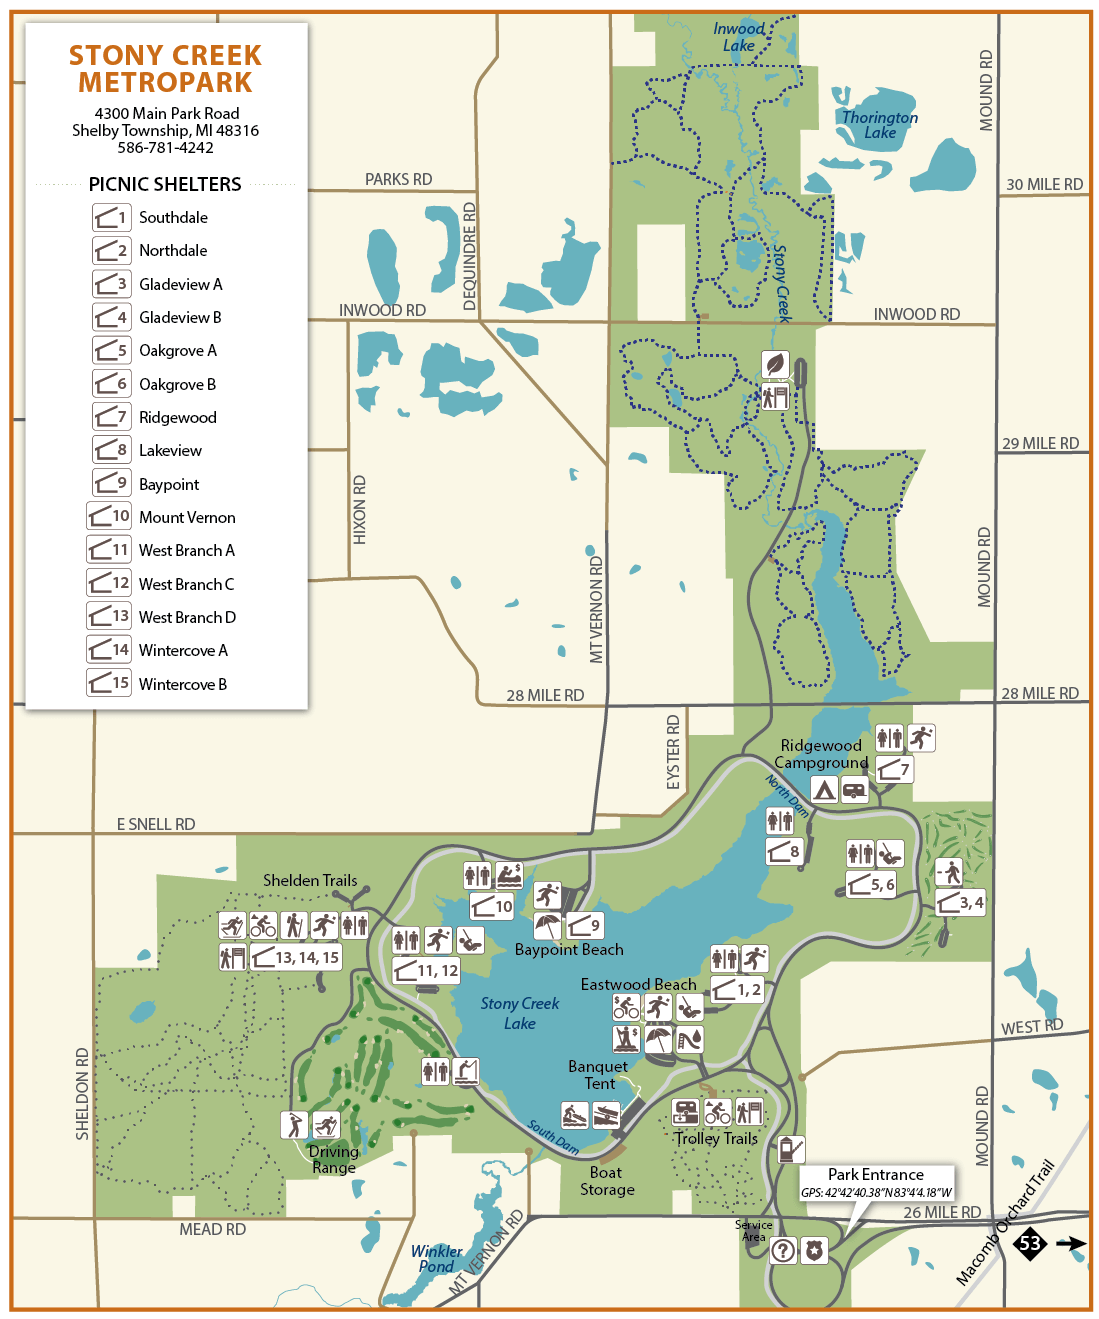 stony creek metropark map with Stony Creek Shelters Venues on 5 additionally 2340629866 moreover 5 additionally 4796151110 moreover Map.